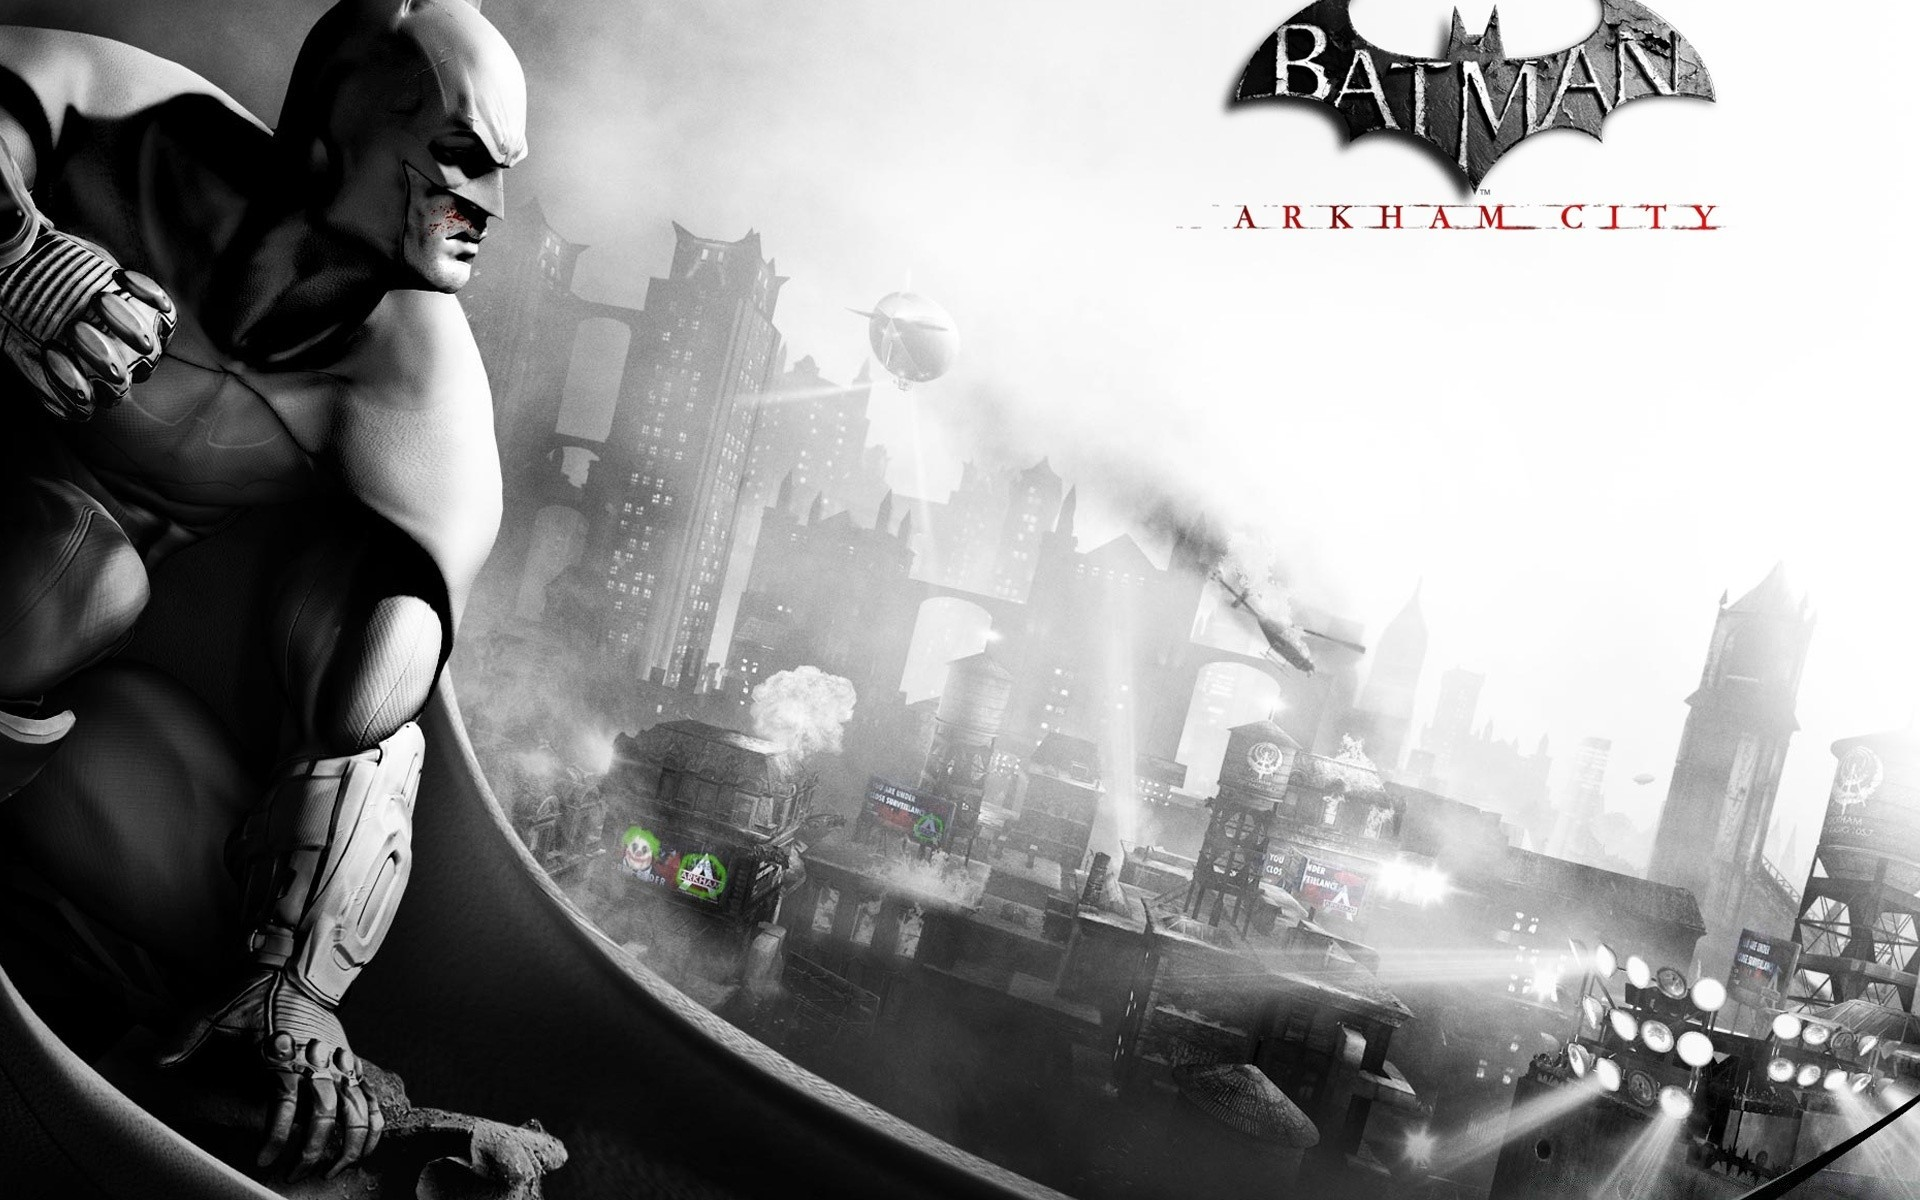 batman arkham city. iphone wallpapers for free.